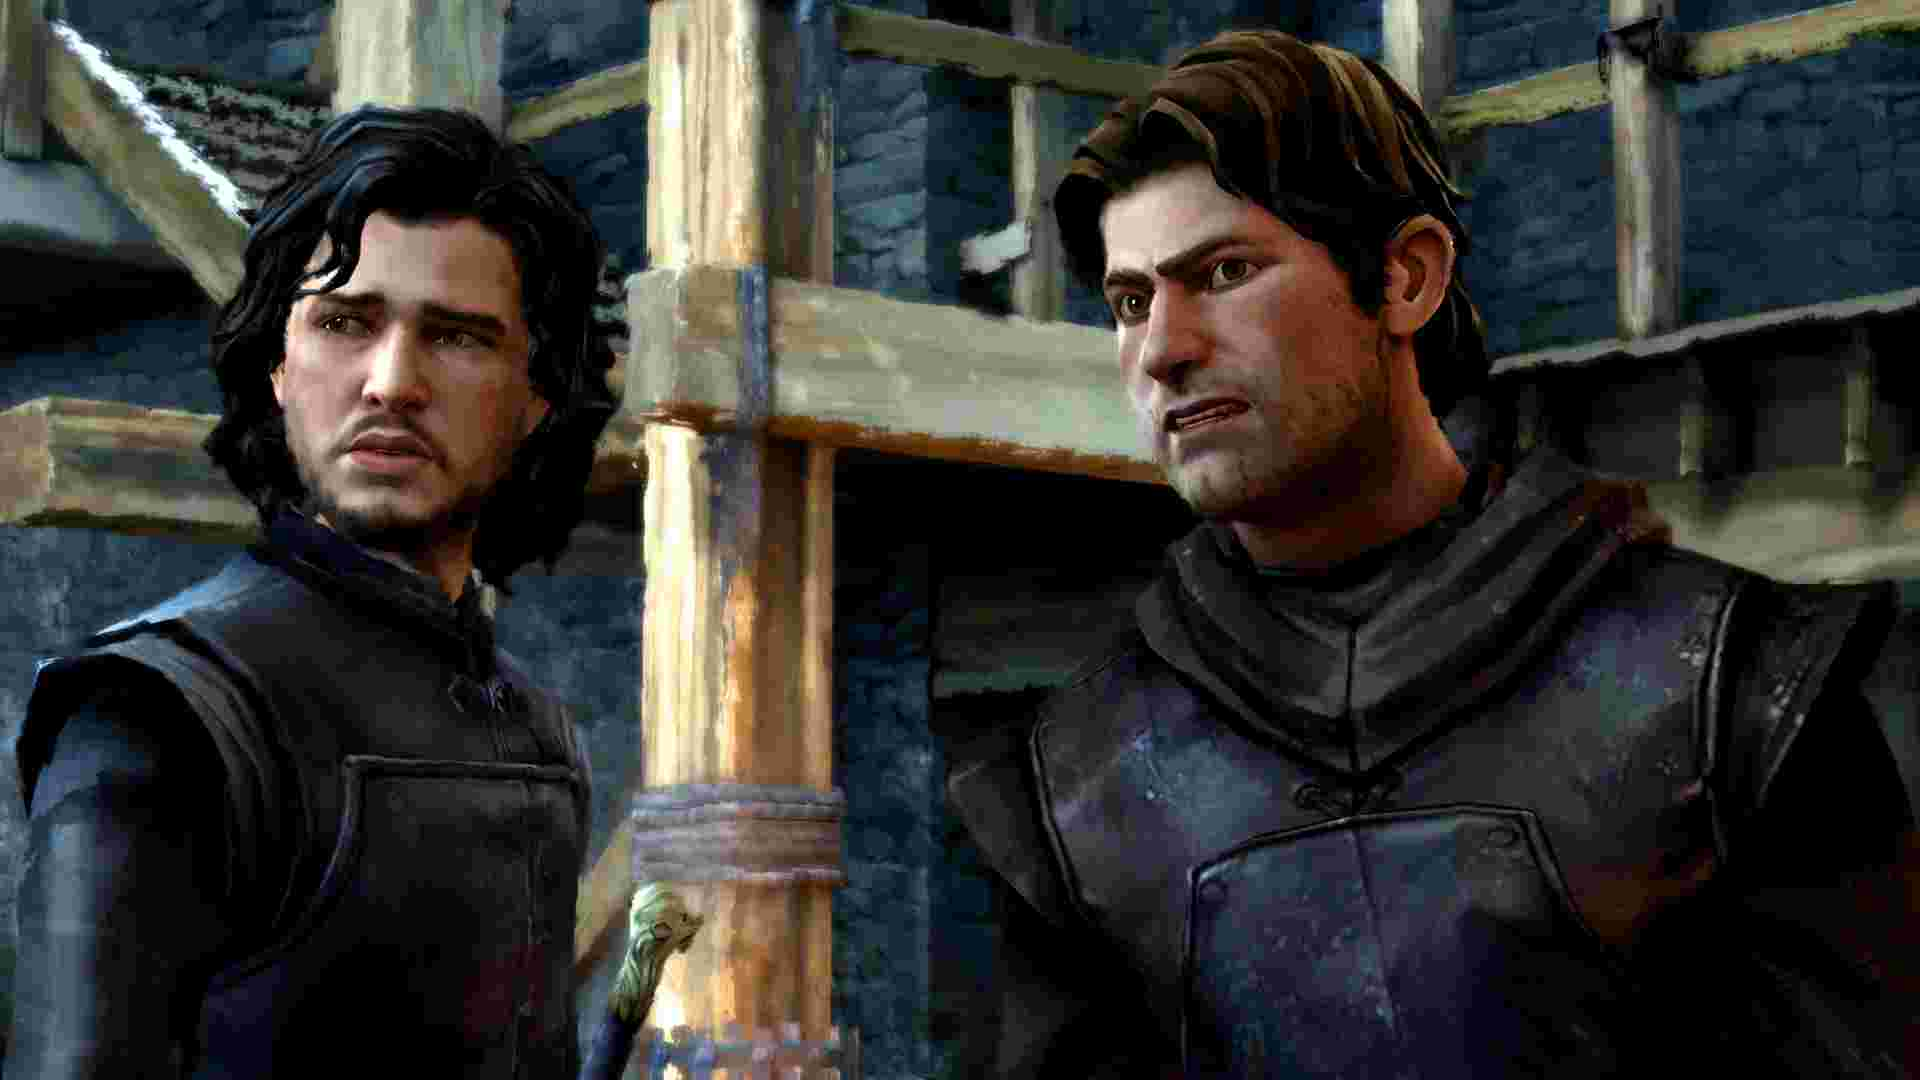 telltale-game-of-thrones-episode-3-jon-and-gared_1920.0